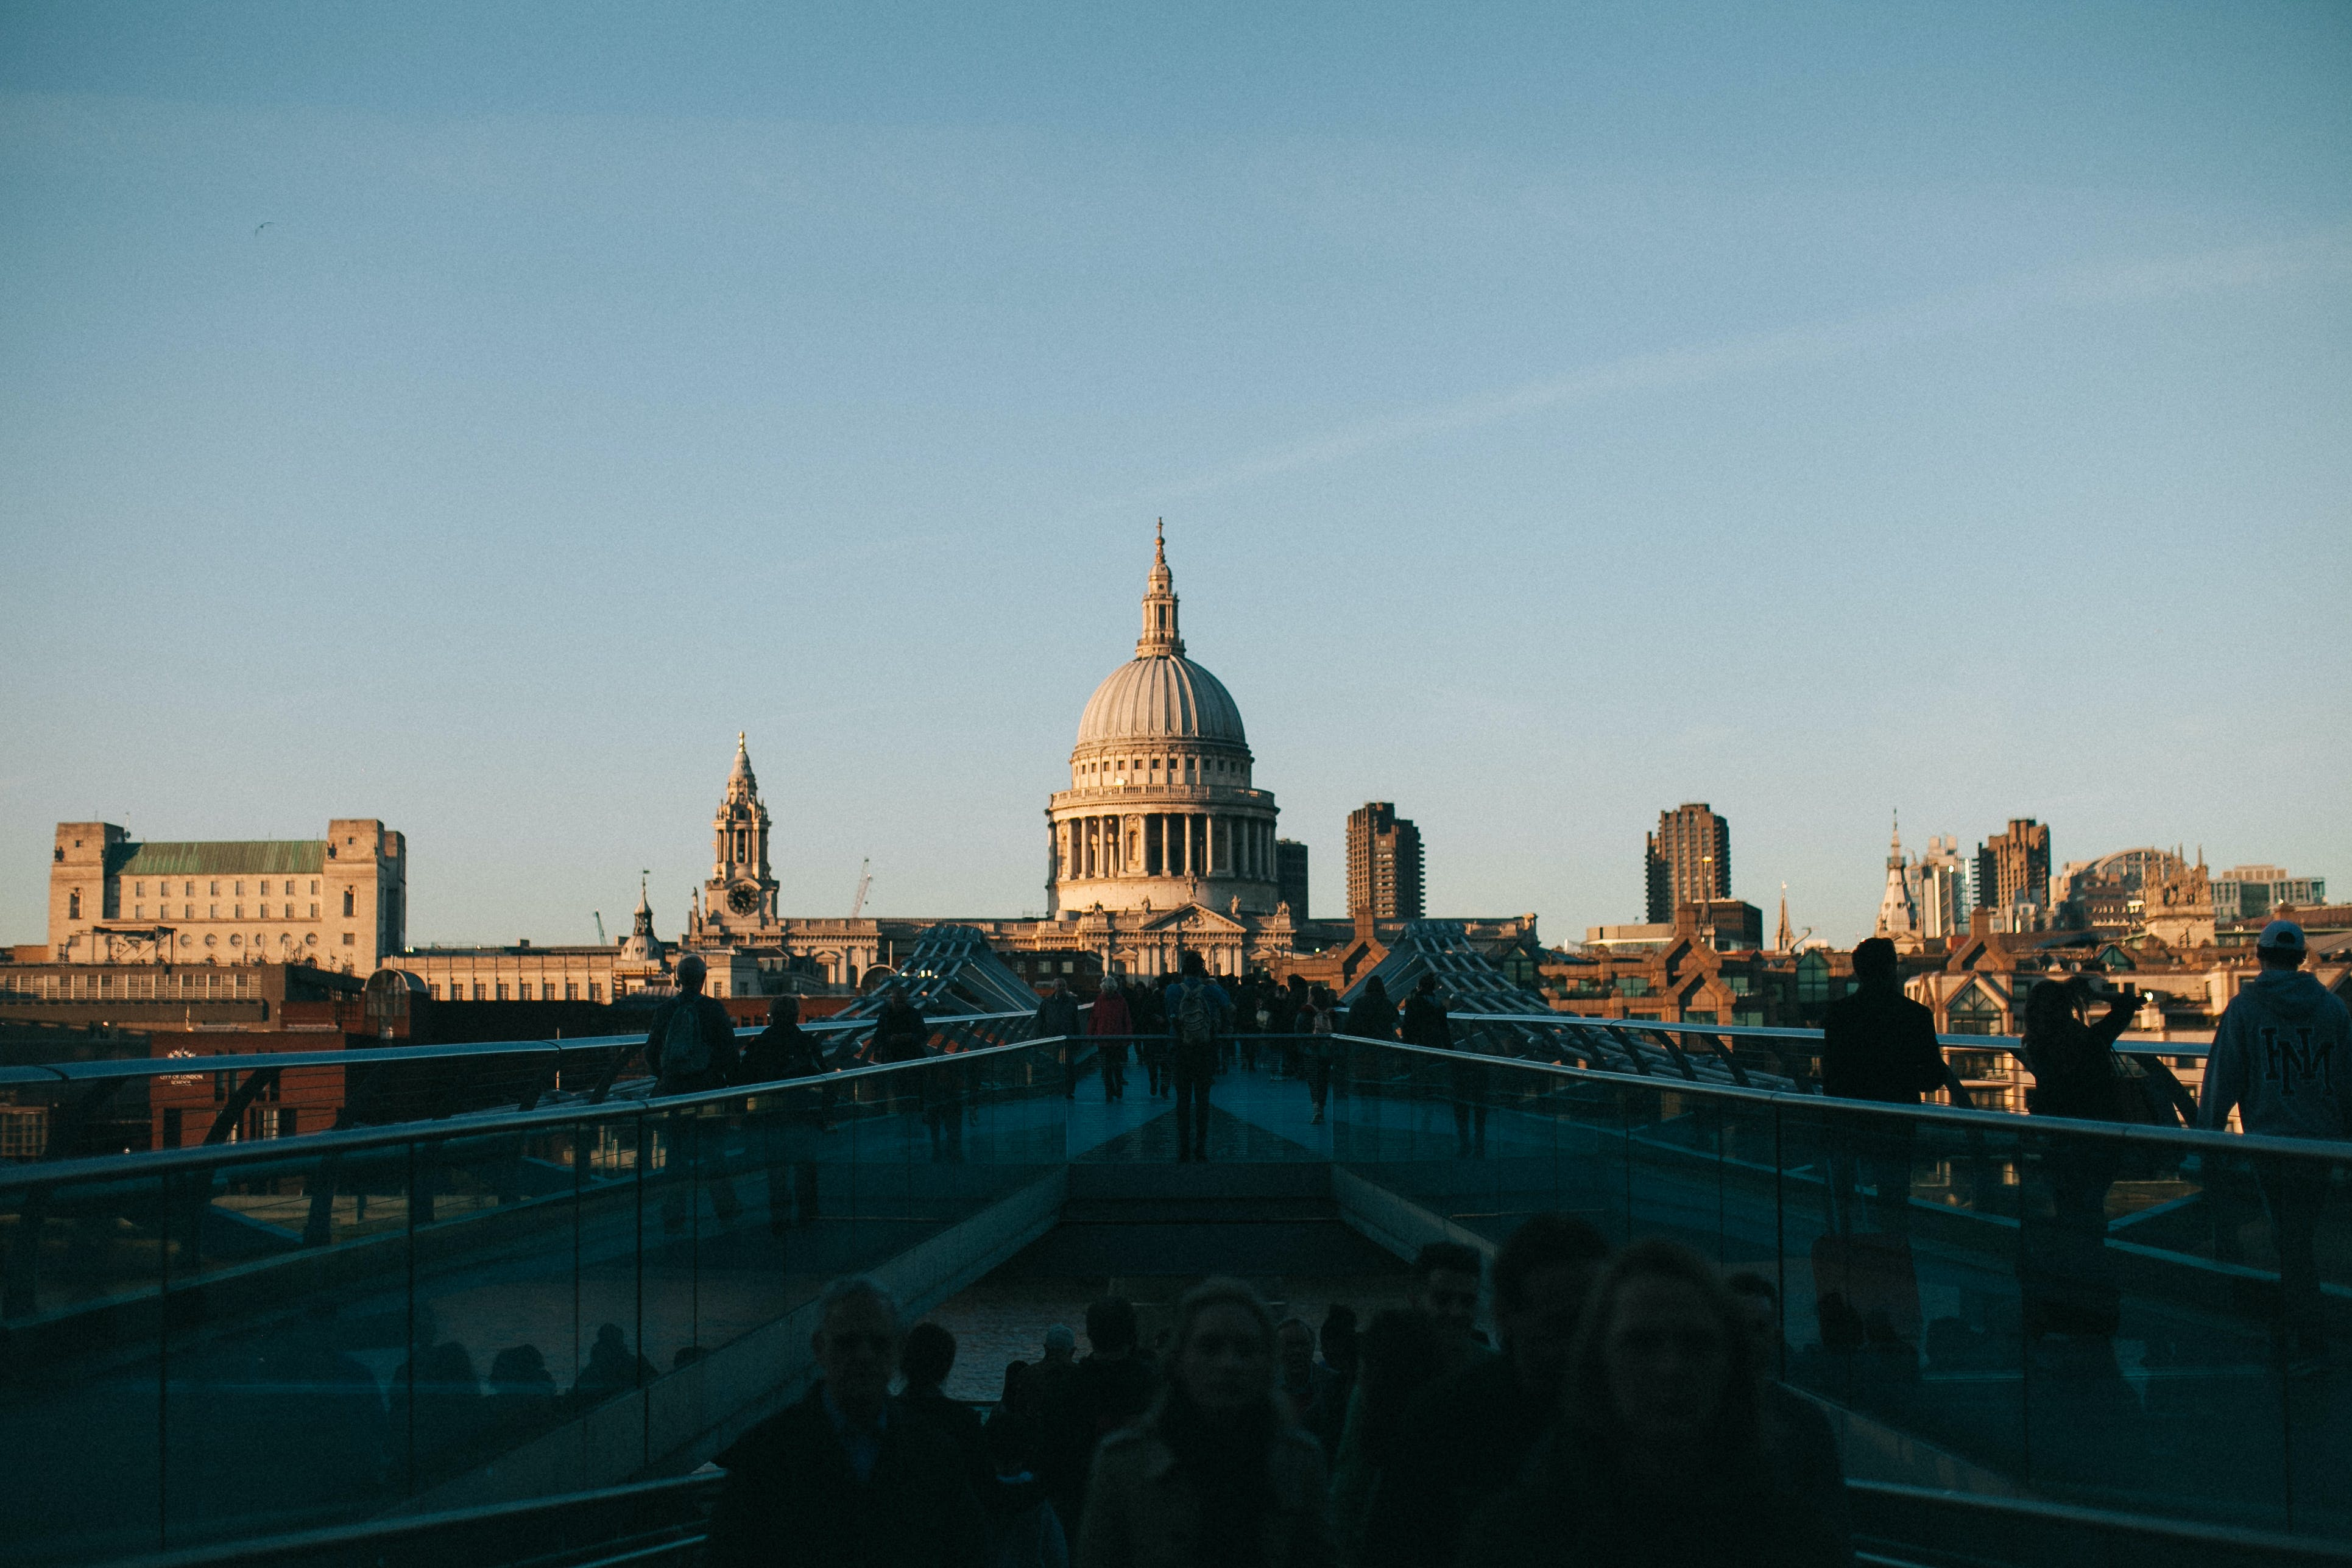 Silhouette Of People Behind St Paul's Cathedral